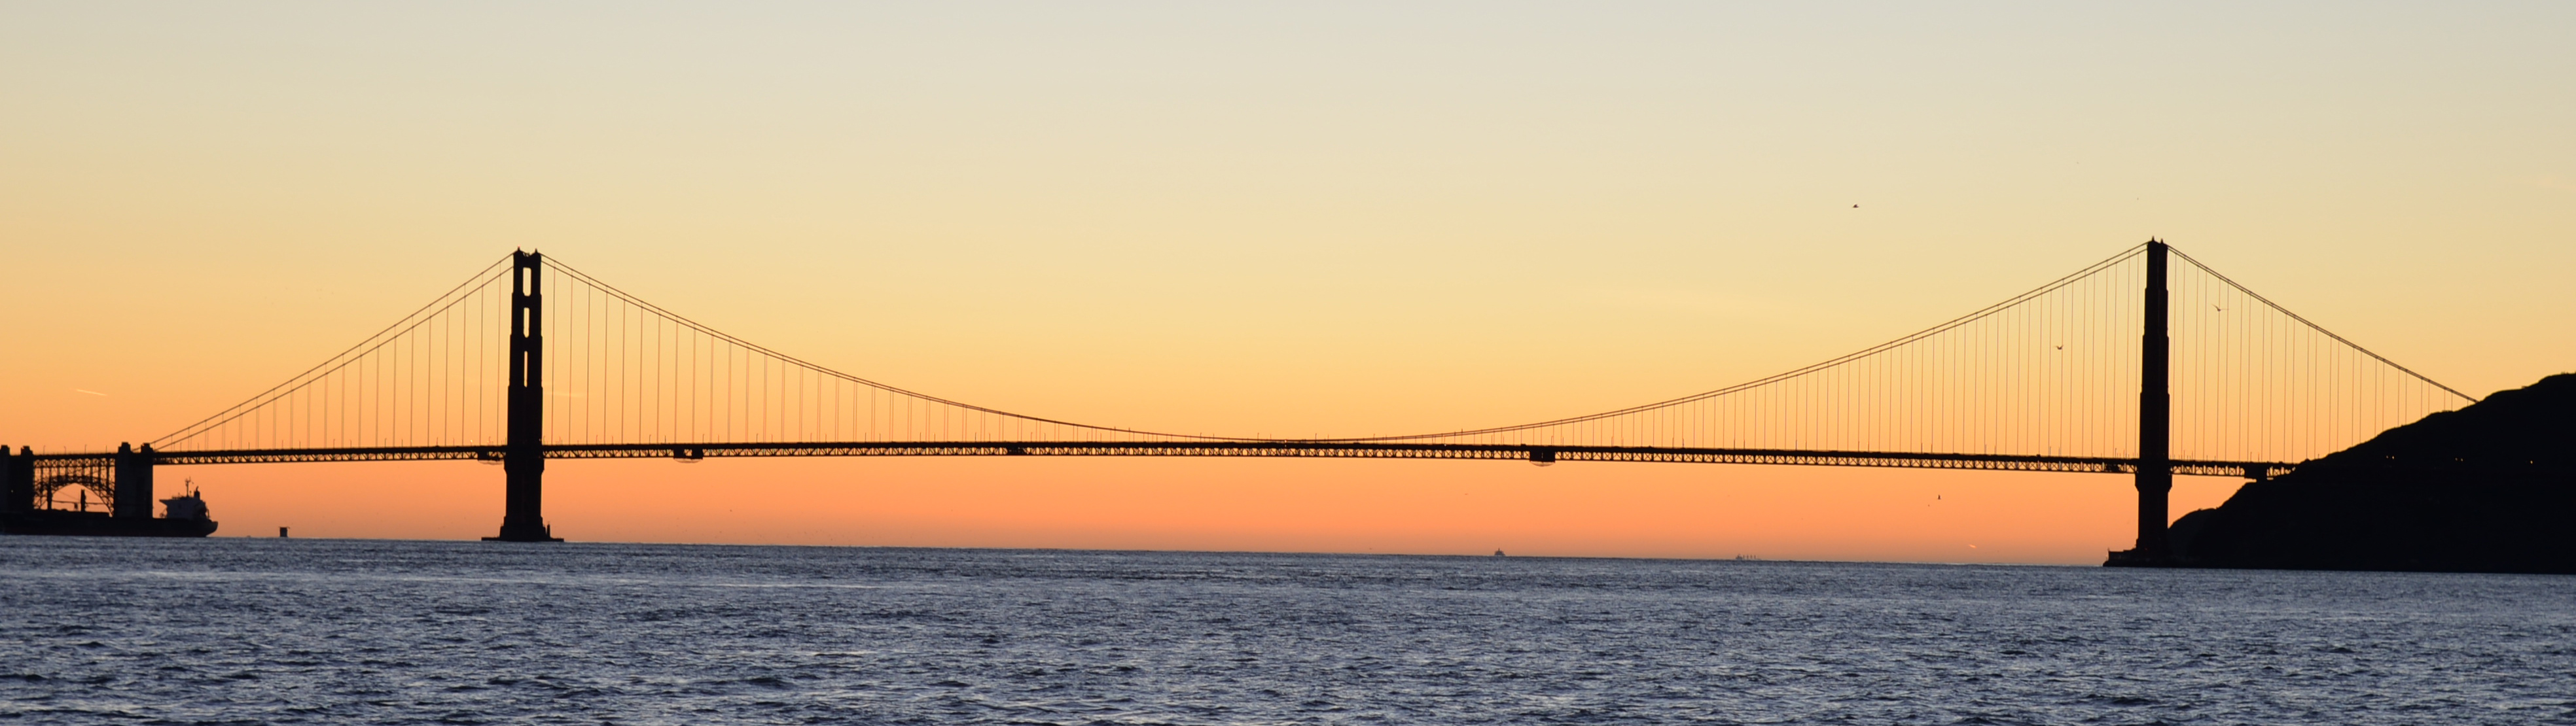 picture of the golden gate bridge at sunset for travel article